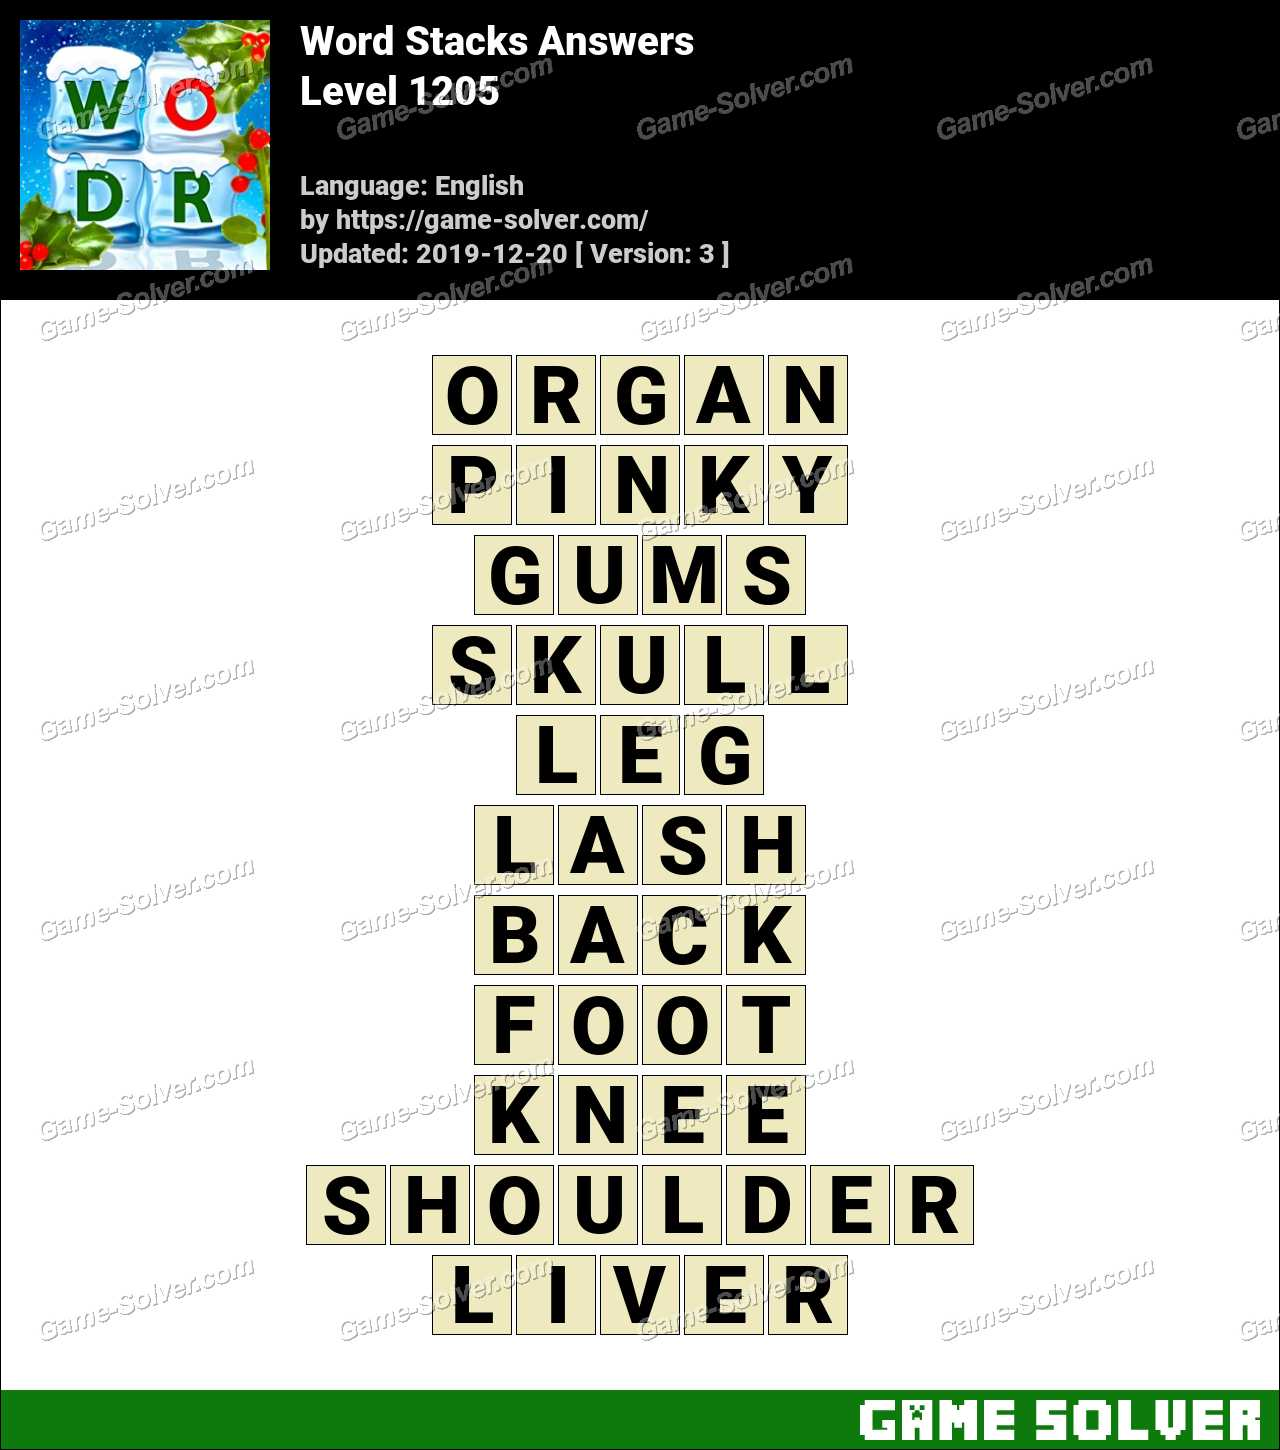 Word Stacks Level 1205 Answers